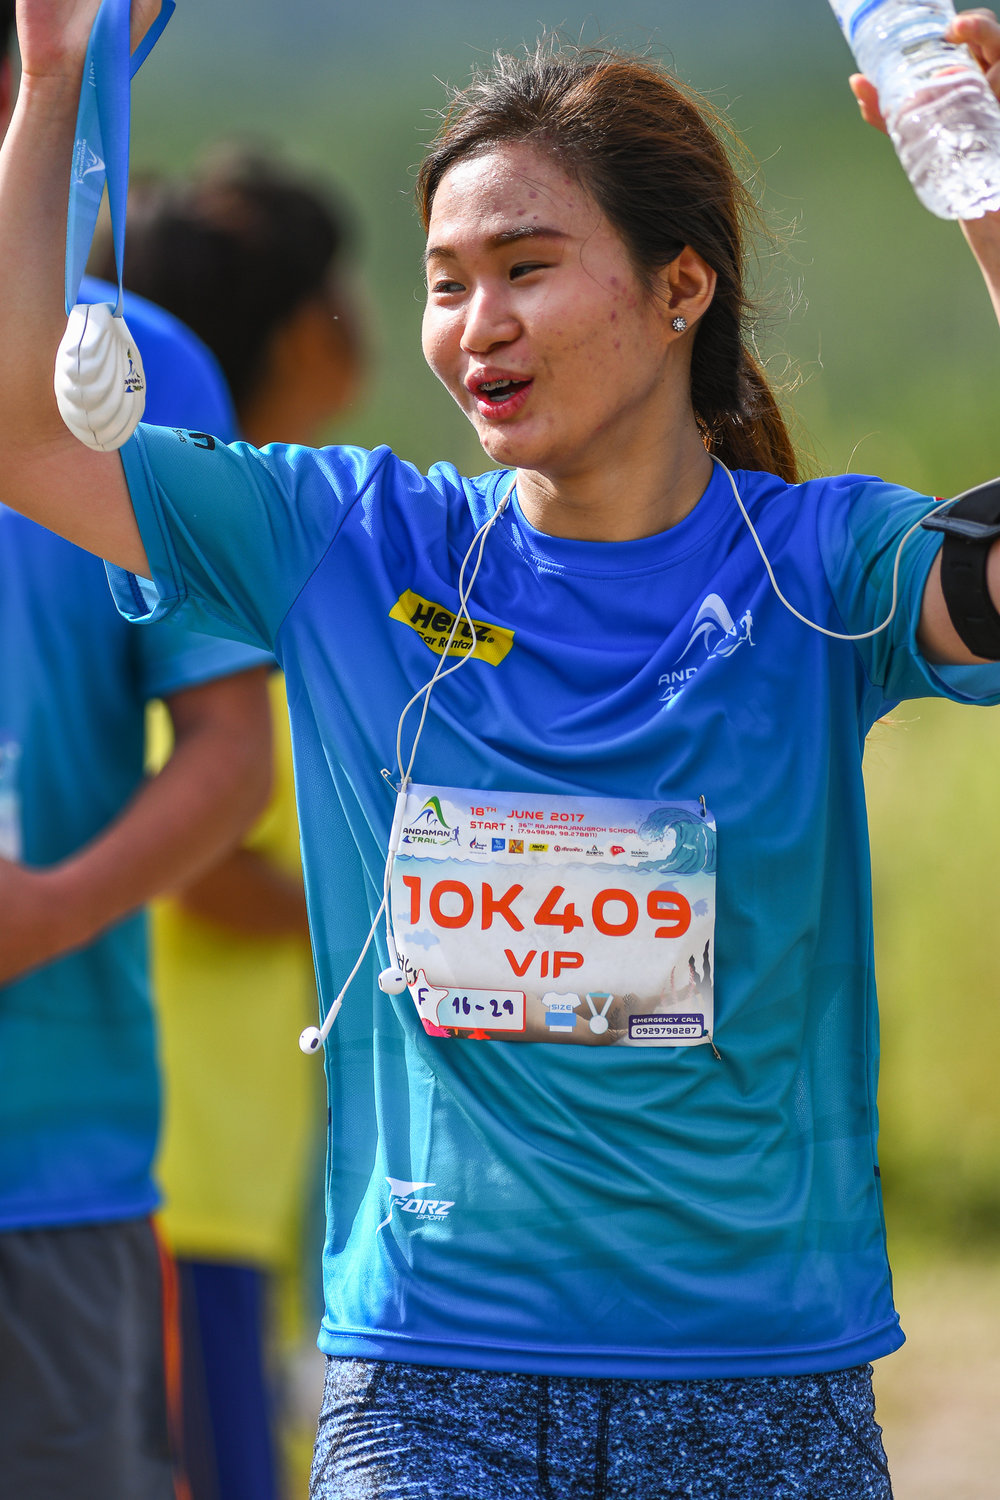 PHUKET, THAILAND - JUNE 18: Participant with her finishing medal at the Andaman Trails 2017 on June 18, 2017 at Ban Bang Niew Dam Reservoir Project, Phuket, Thailand. (Photo by: Naratip Srisupab/Thailand Photo SEALs Sports Photography)